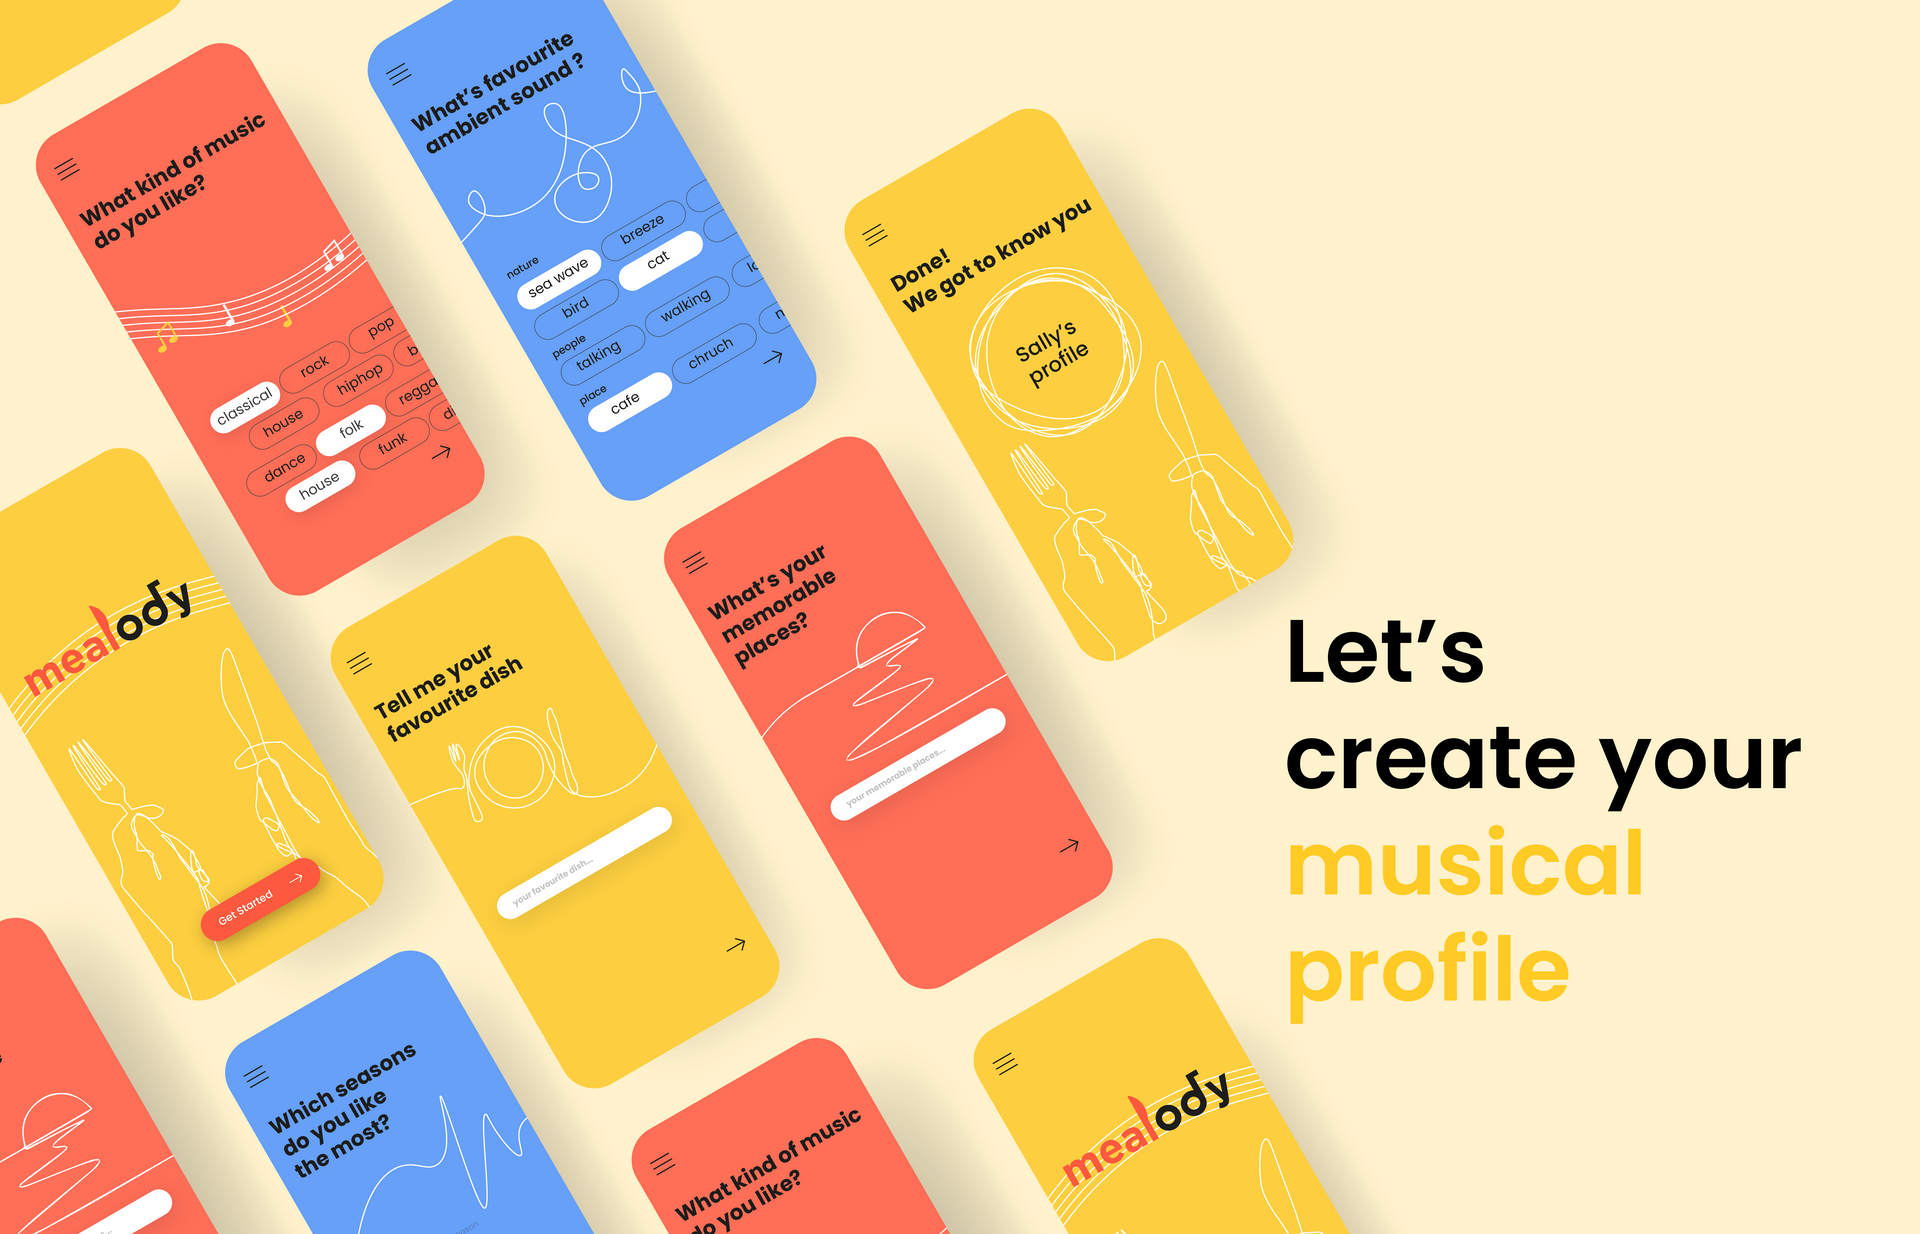 Mealody app to create your musical profile